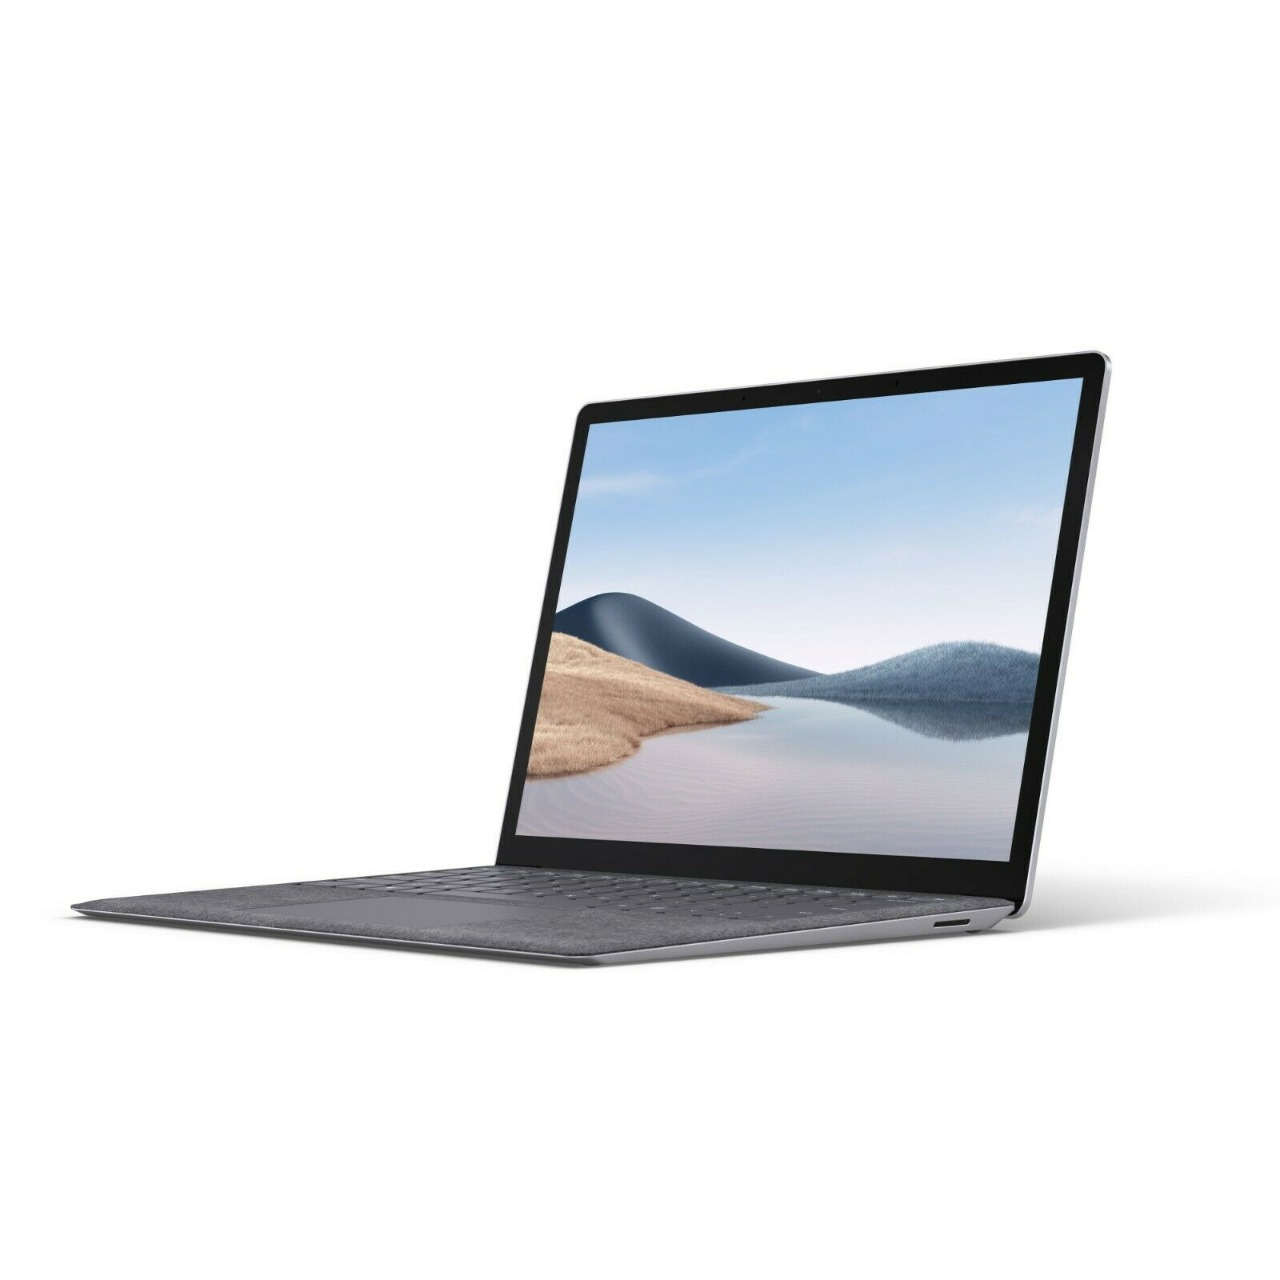 Microsoft Surface laptop 4 15